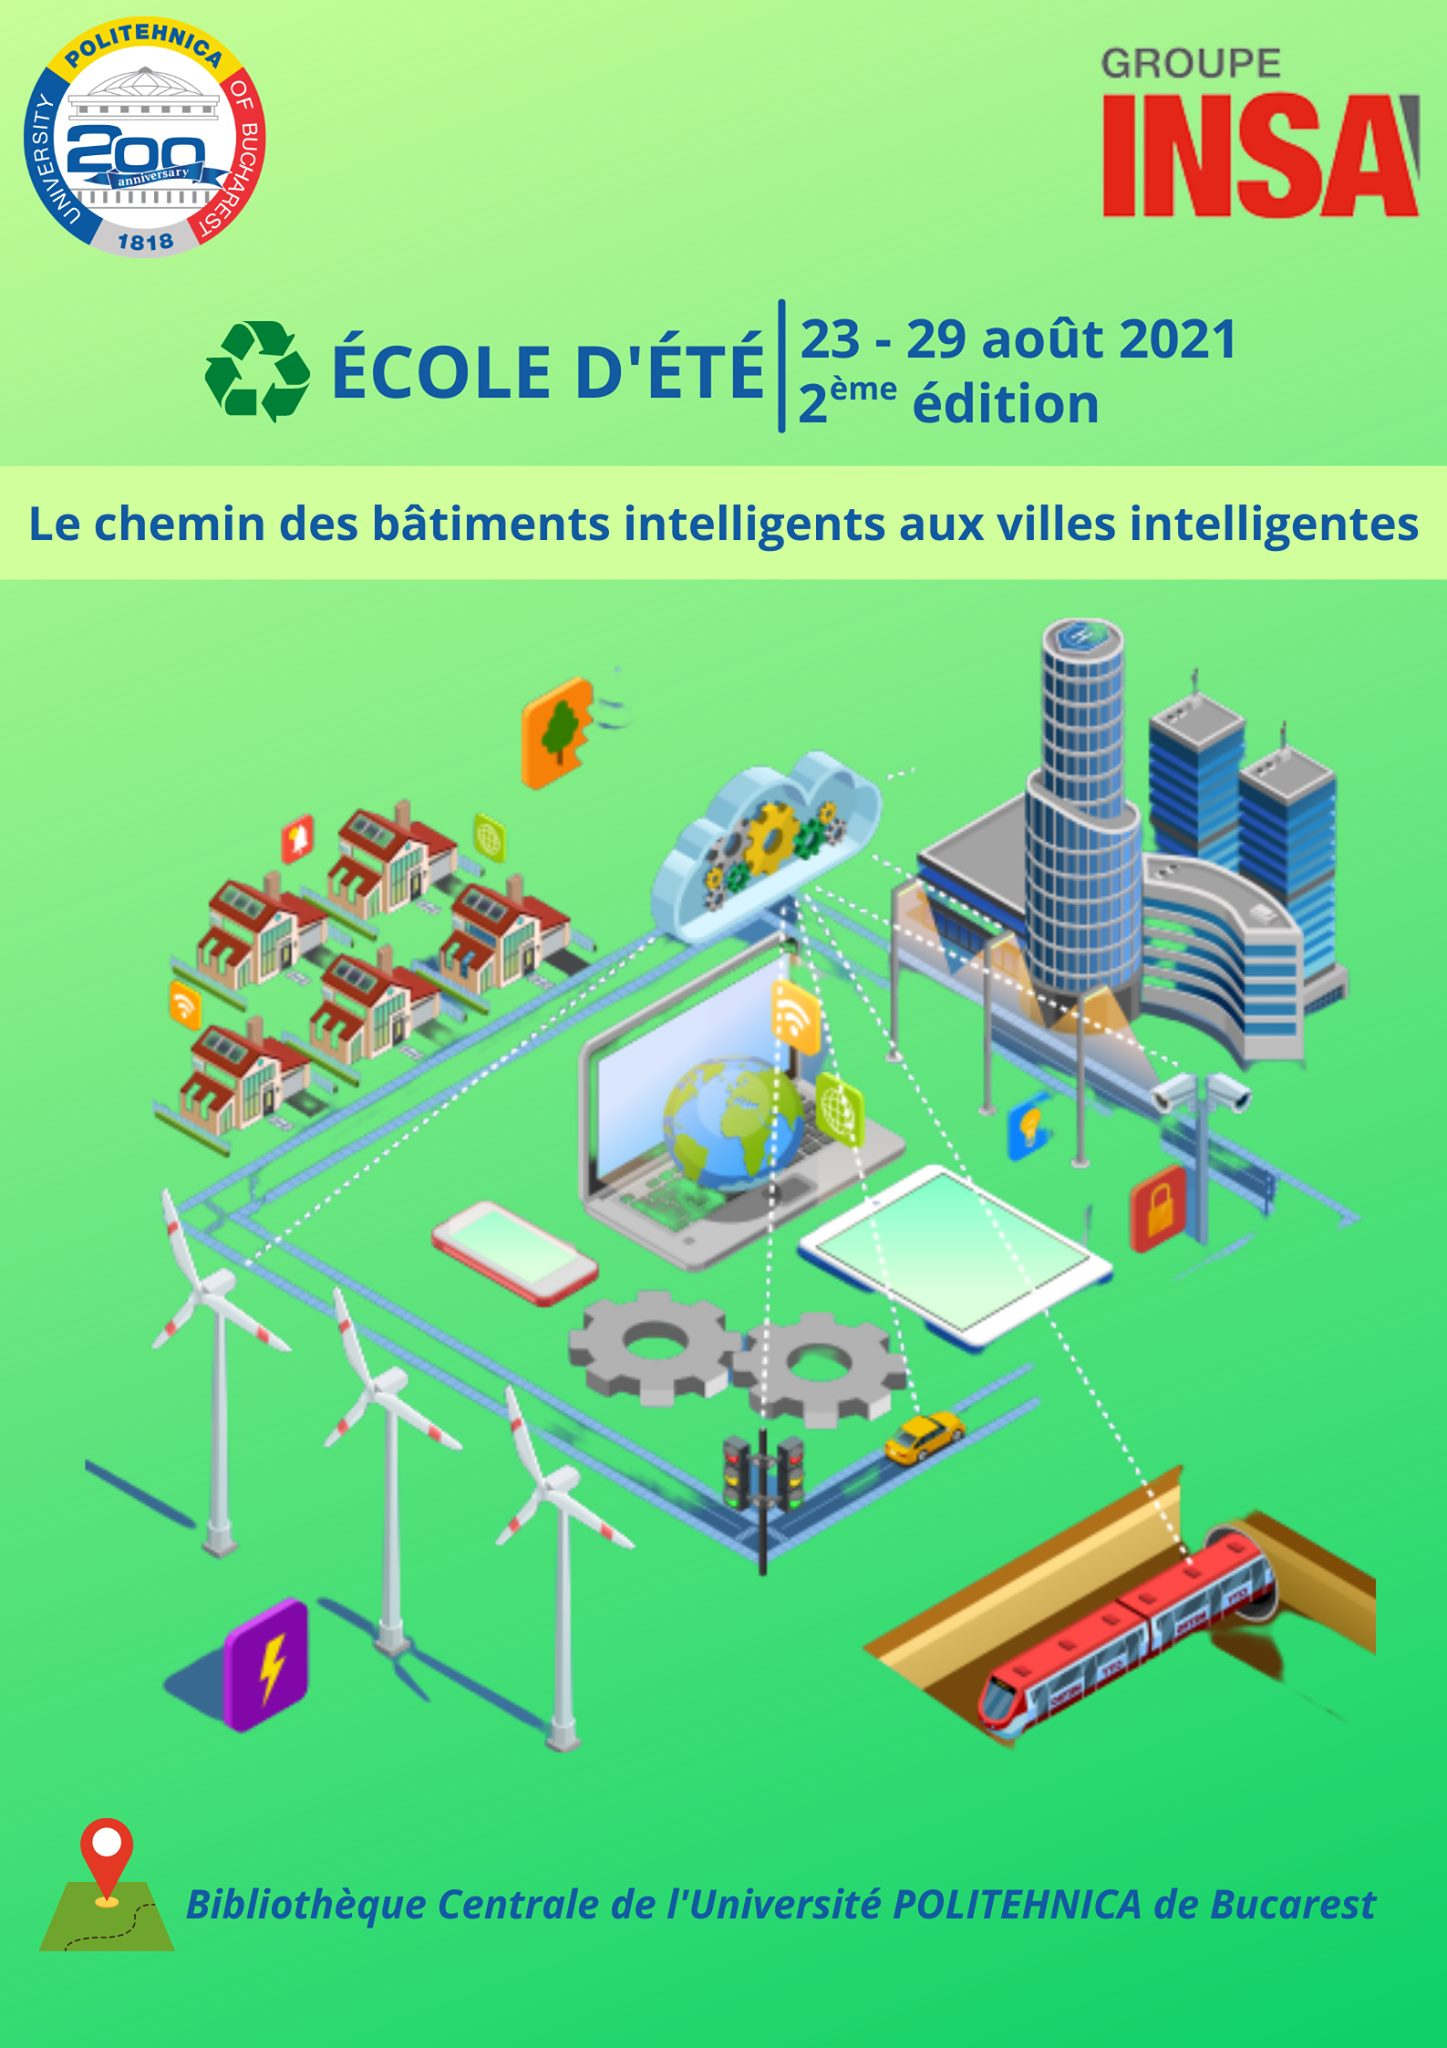 UPB & Groupe INSA Summer School 'The Way from Smart Buildings to Smart Cities'